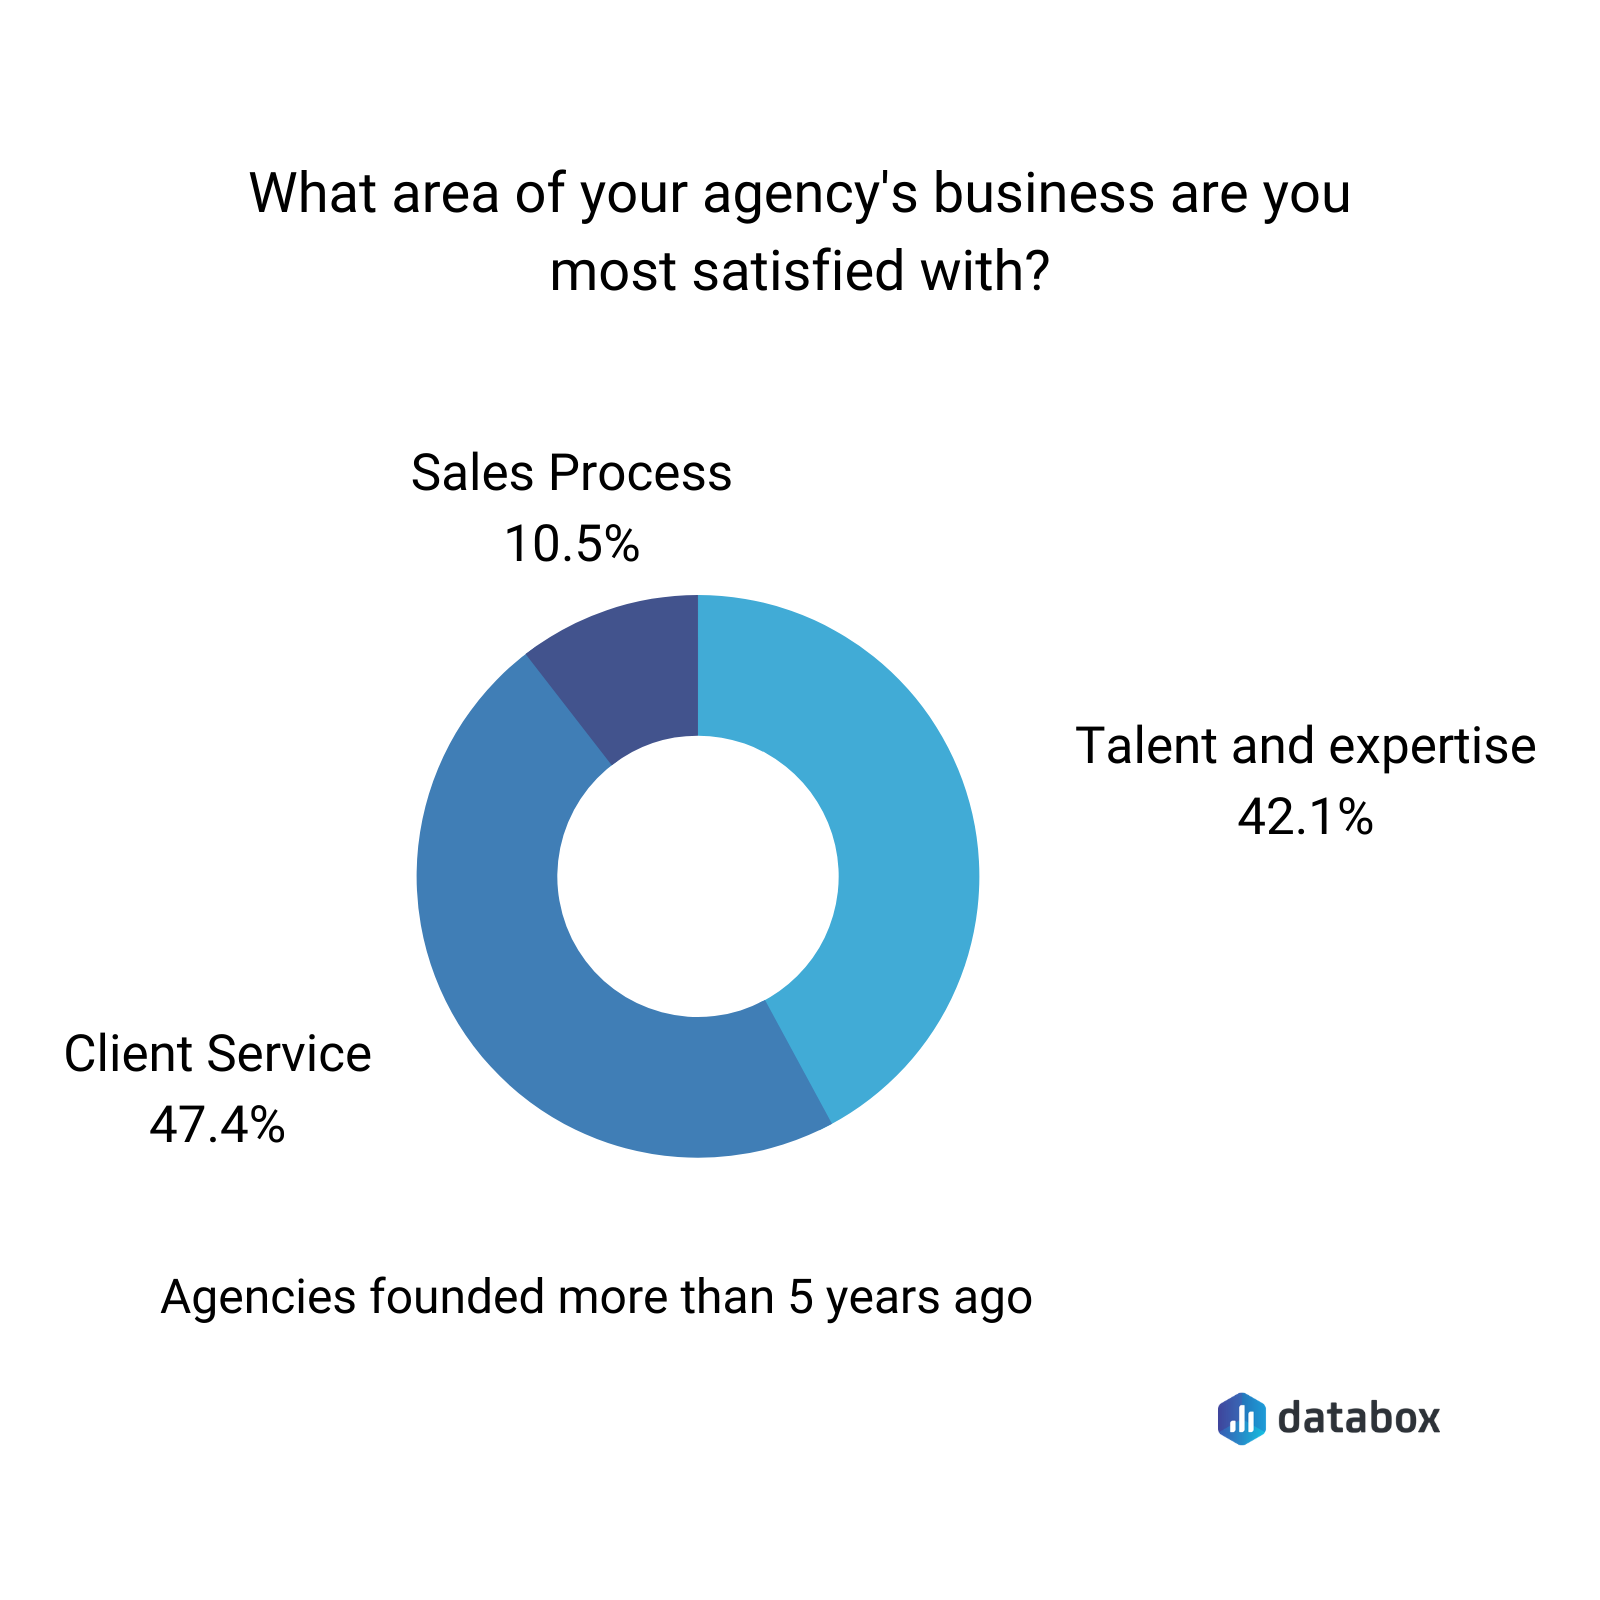 What area of your agency's business are you most satisfied with?